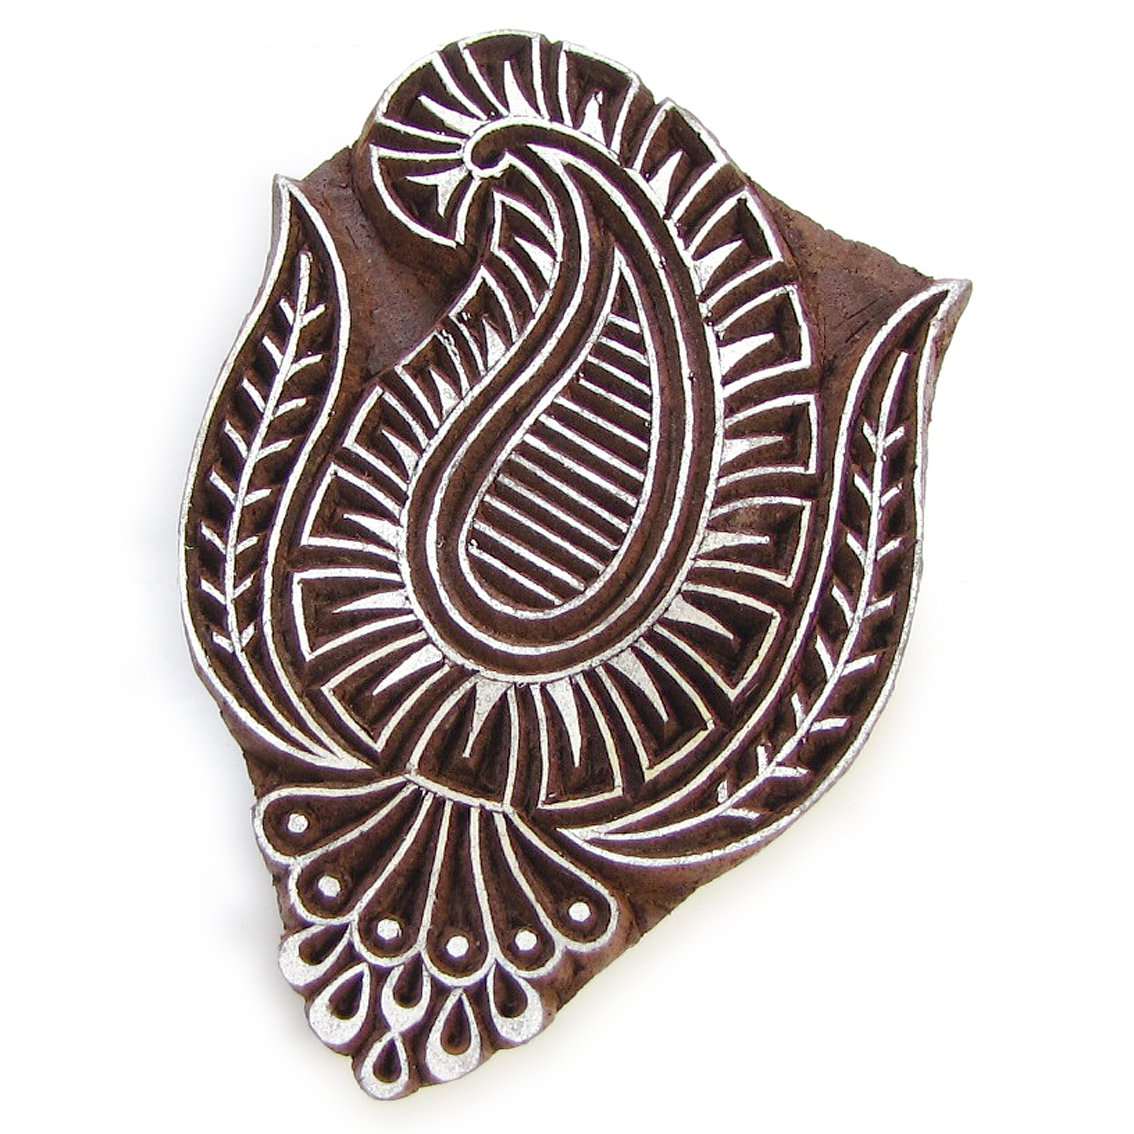 Ink stamp paisley4 large 4in handmade solid wood block stamping paper crafts Indian folk art